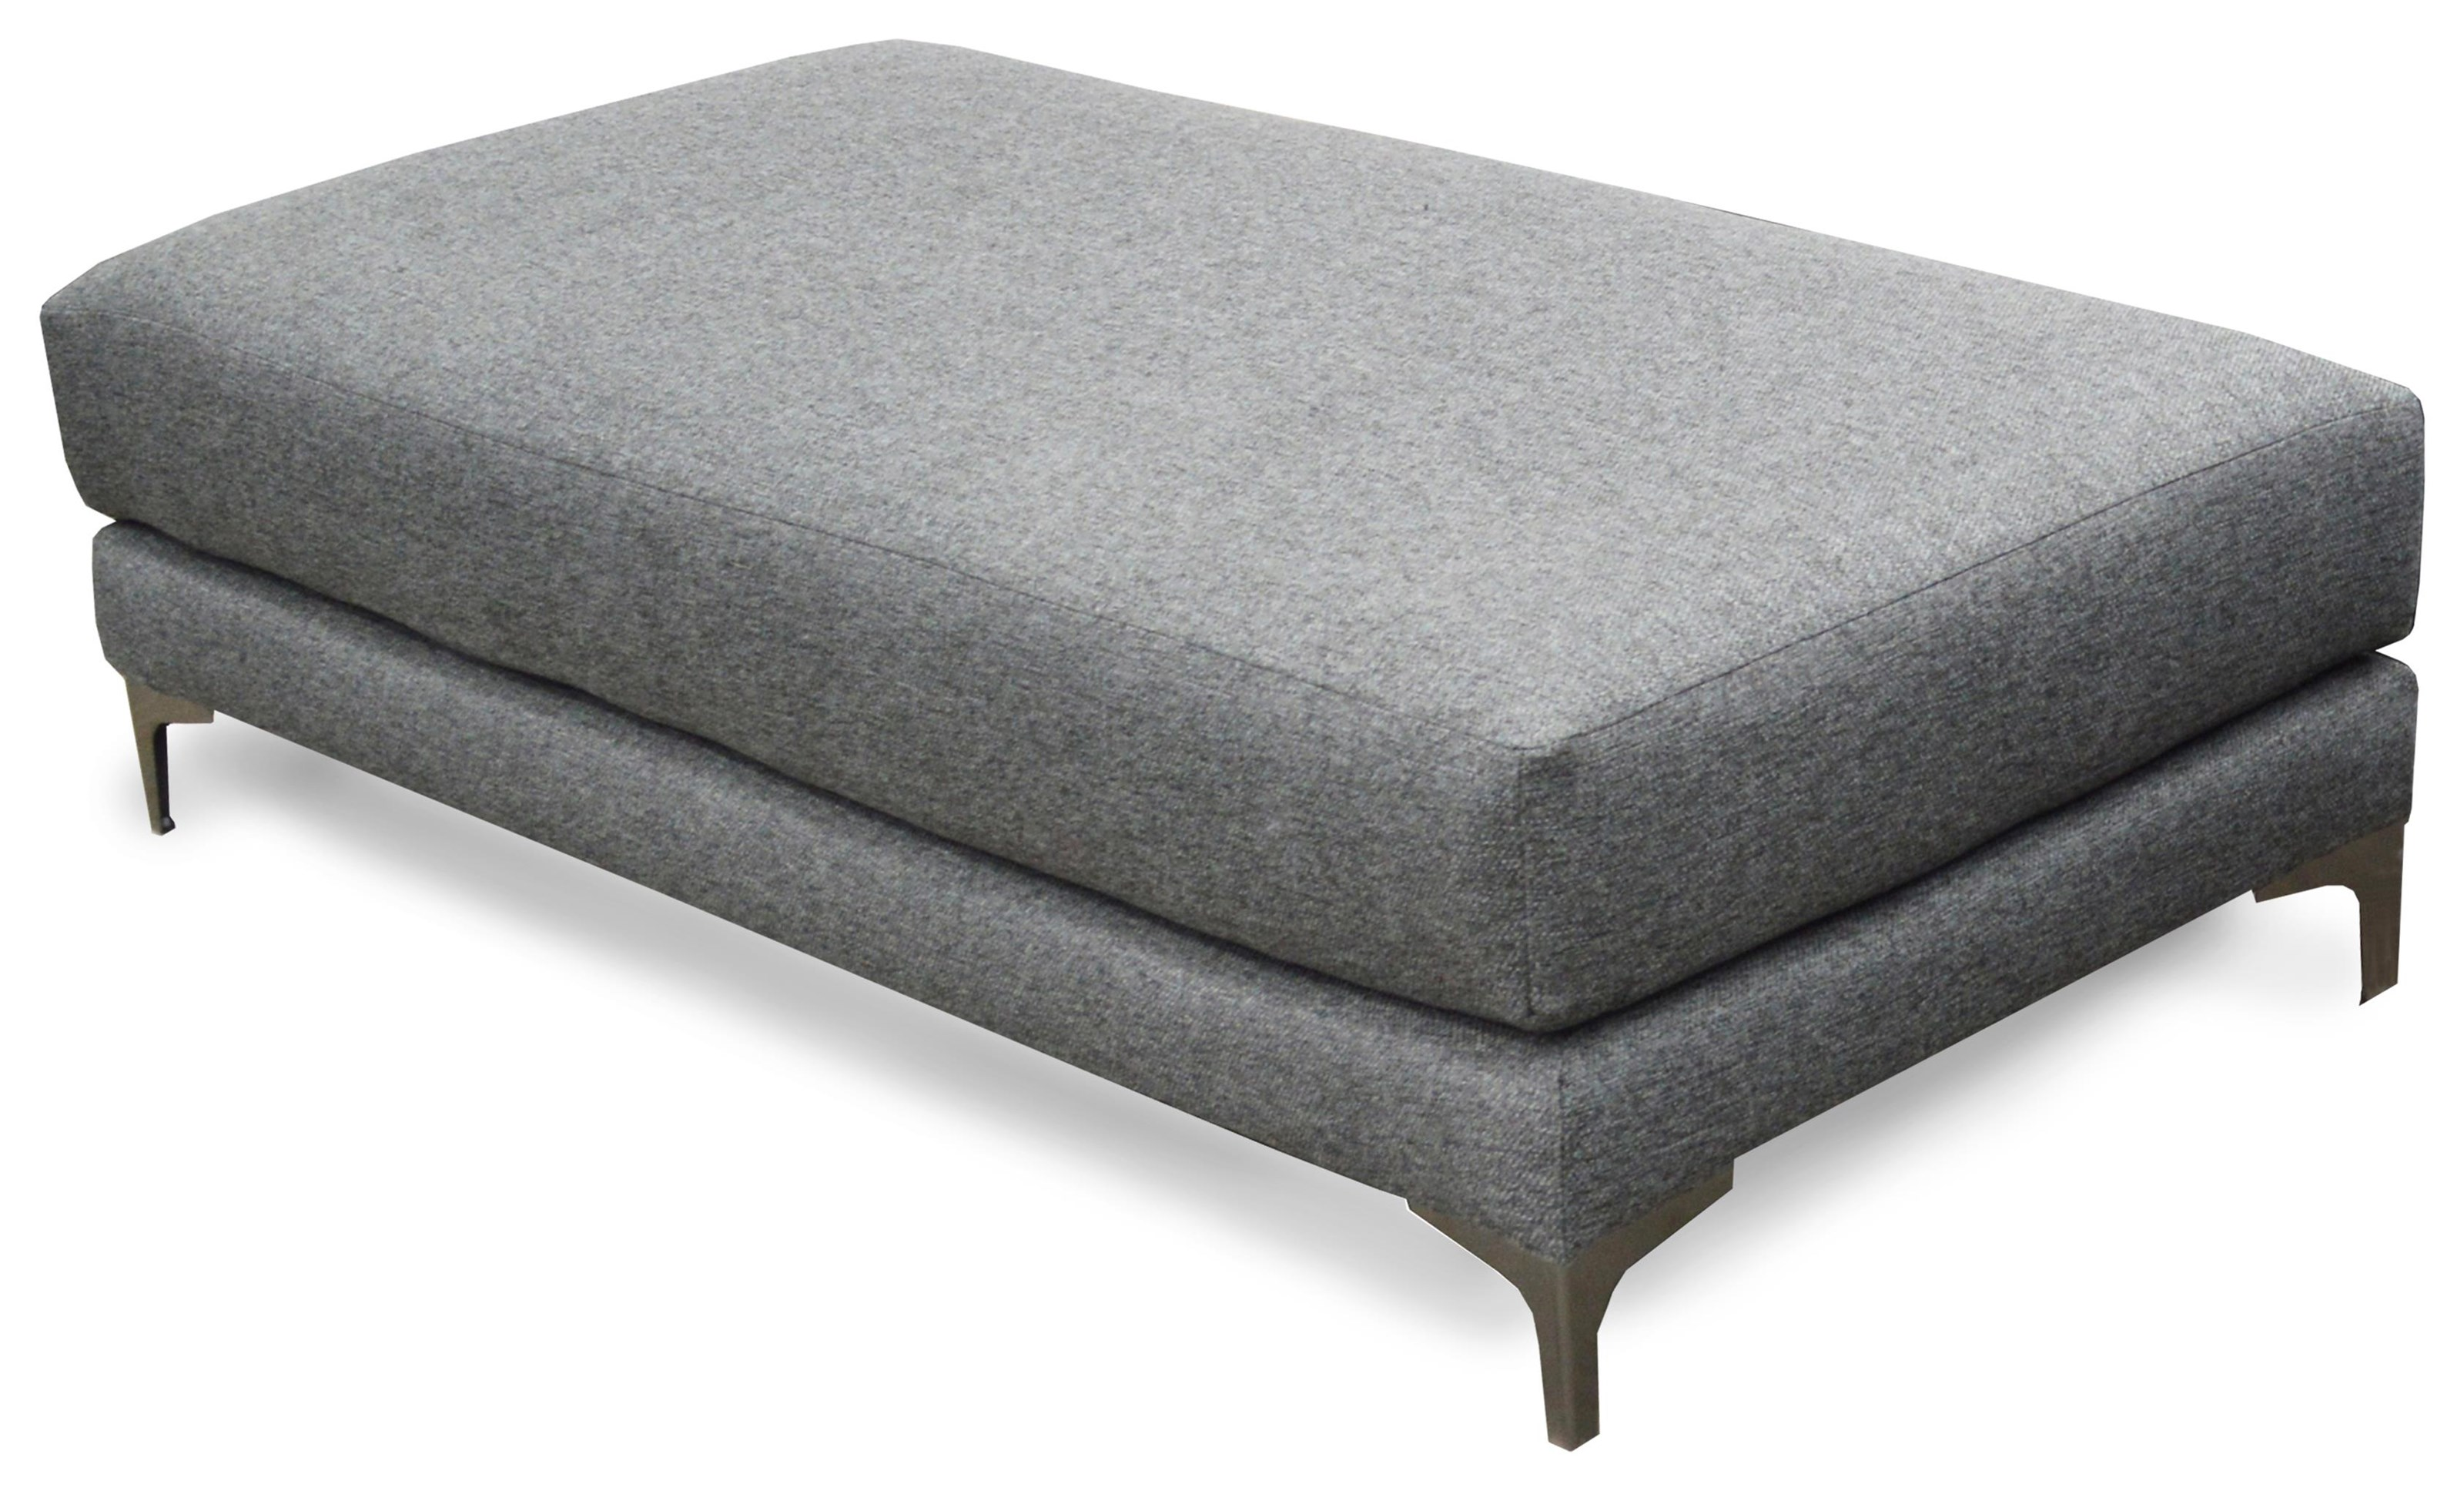 Alyssa Ottoman by Urban Roads at Darvin Furniture